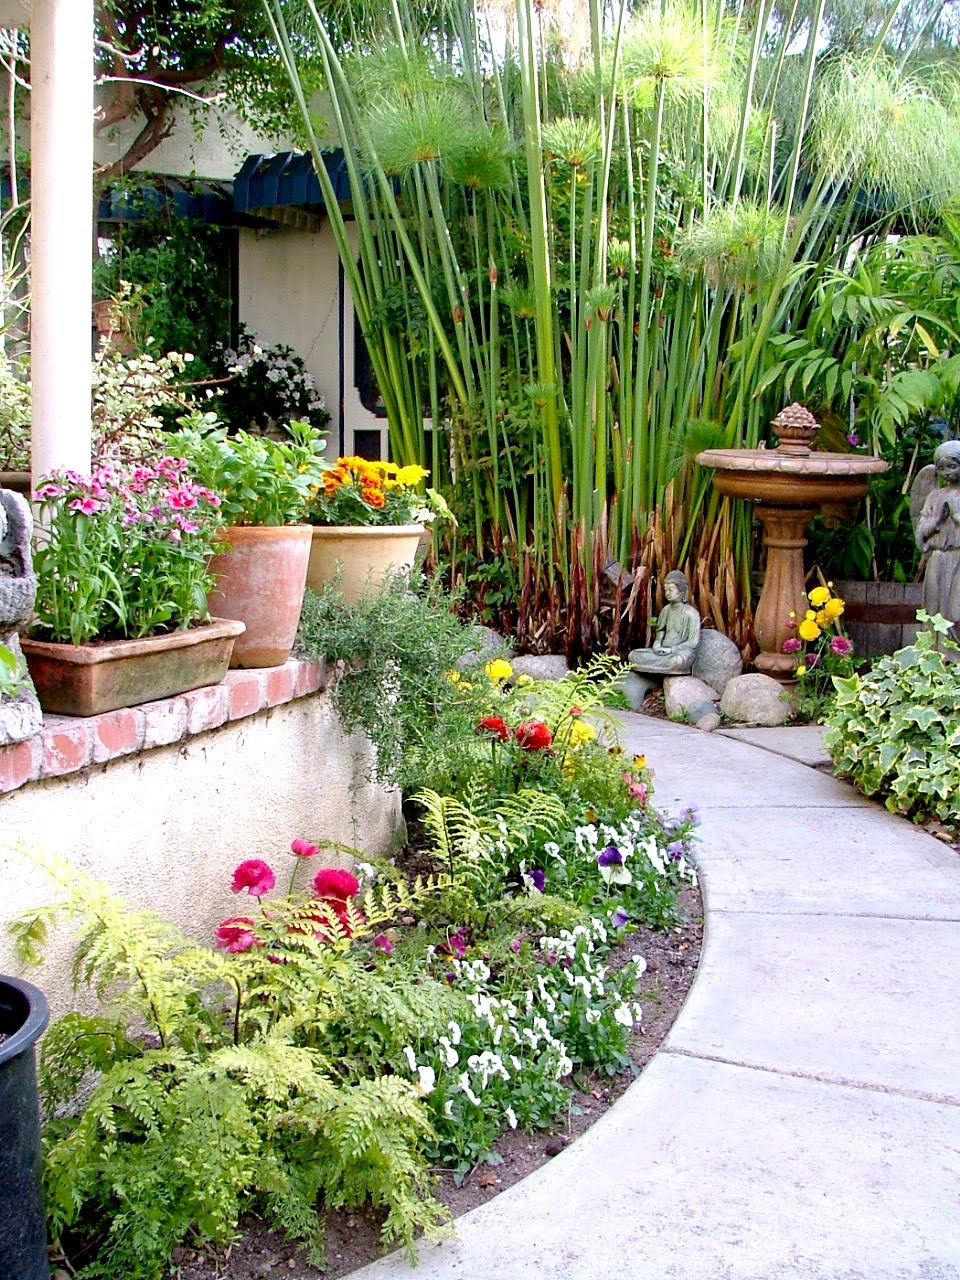 Southern gardening and food garden bed ideas for Food garden ideas